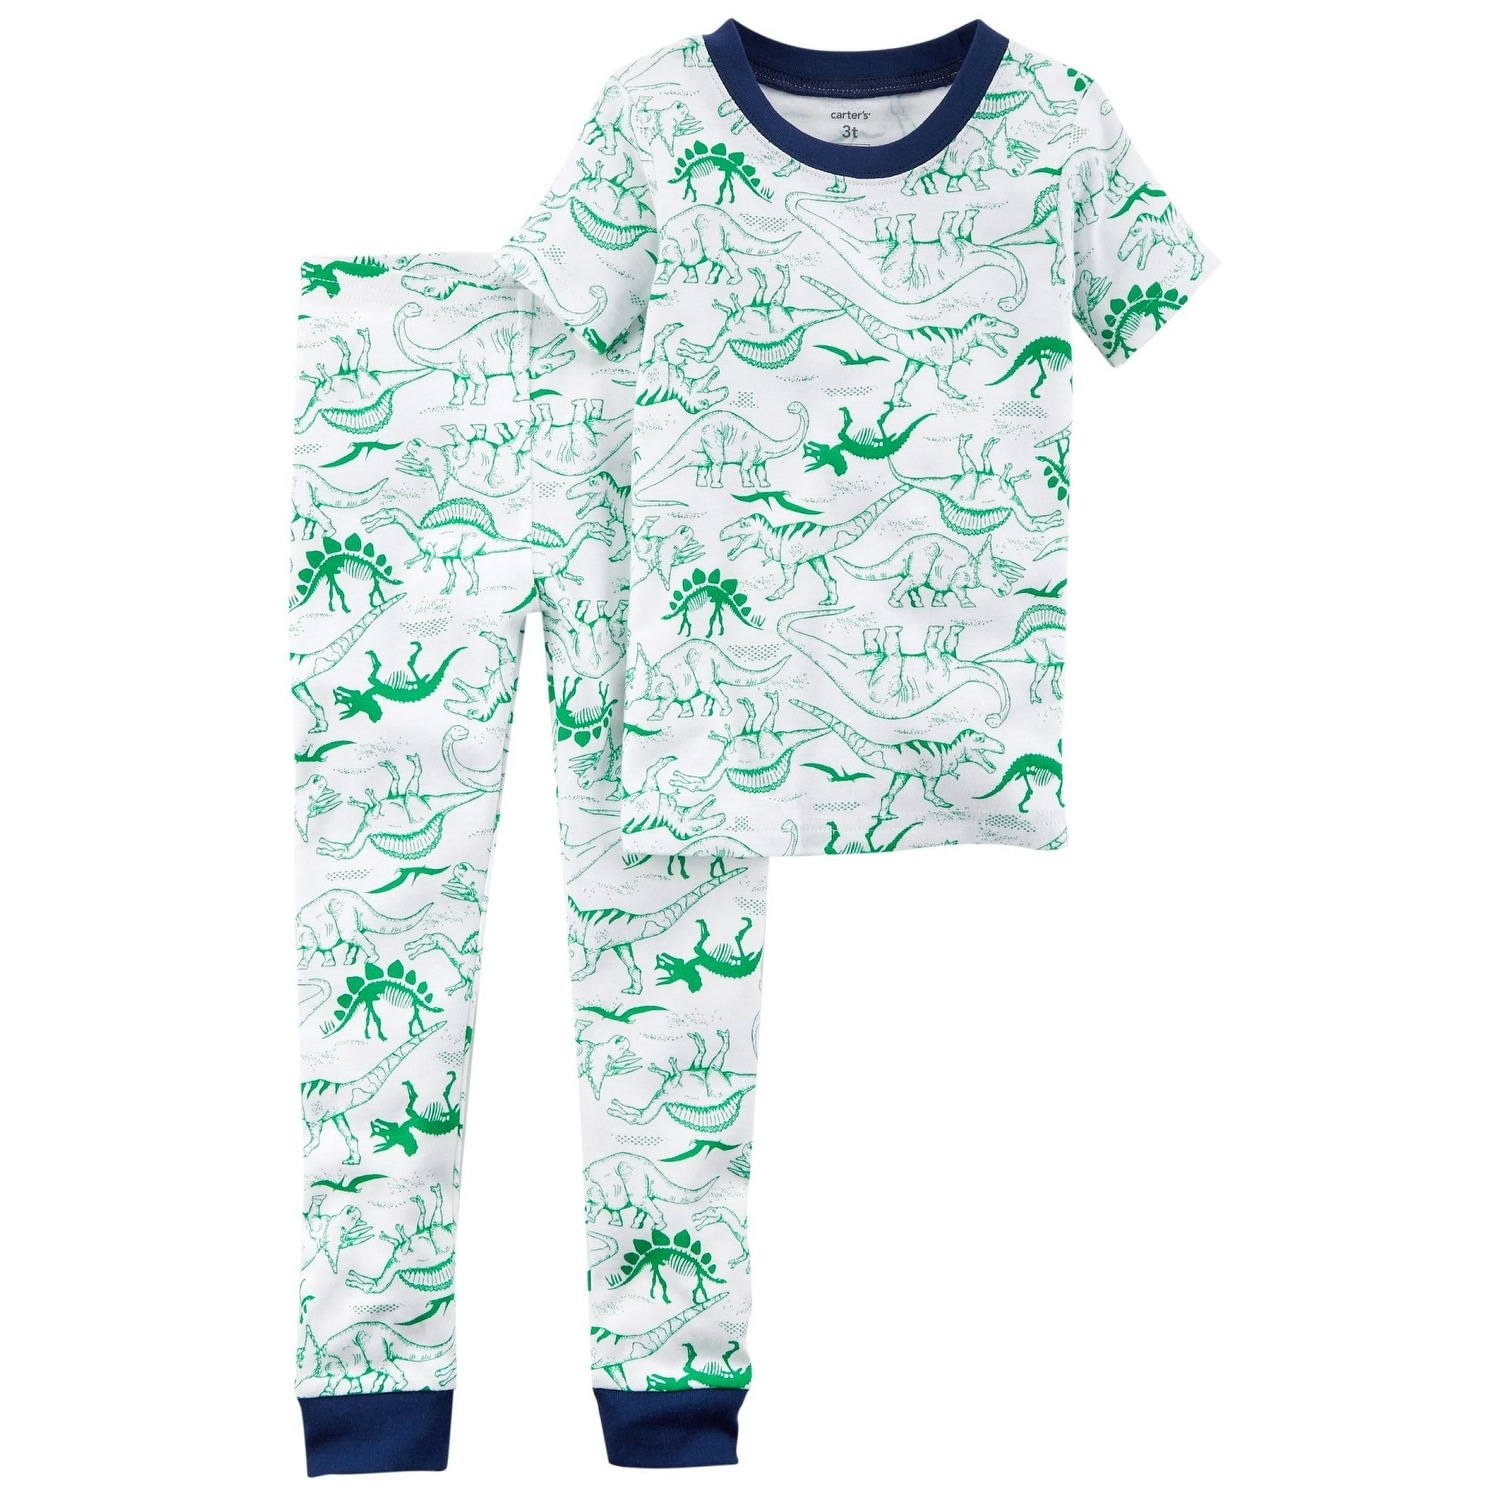 Shop Carters Baby Boys 2 Piece Dinosaur Snug Fit Cotton Pjs Free 3 Pieces Orange Mickey Mouse Shipping On Orders Over 45 21178418